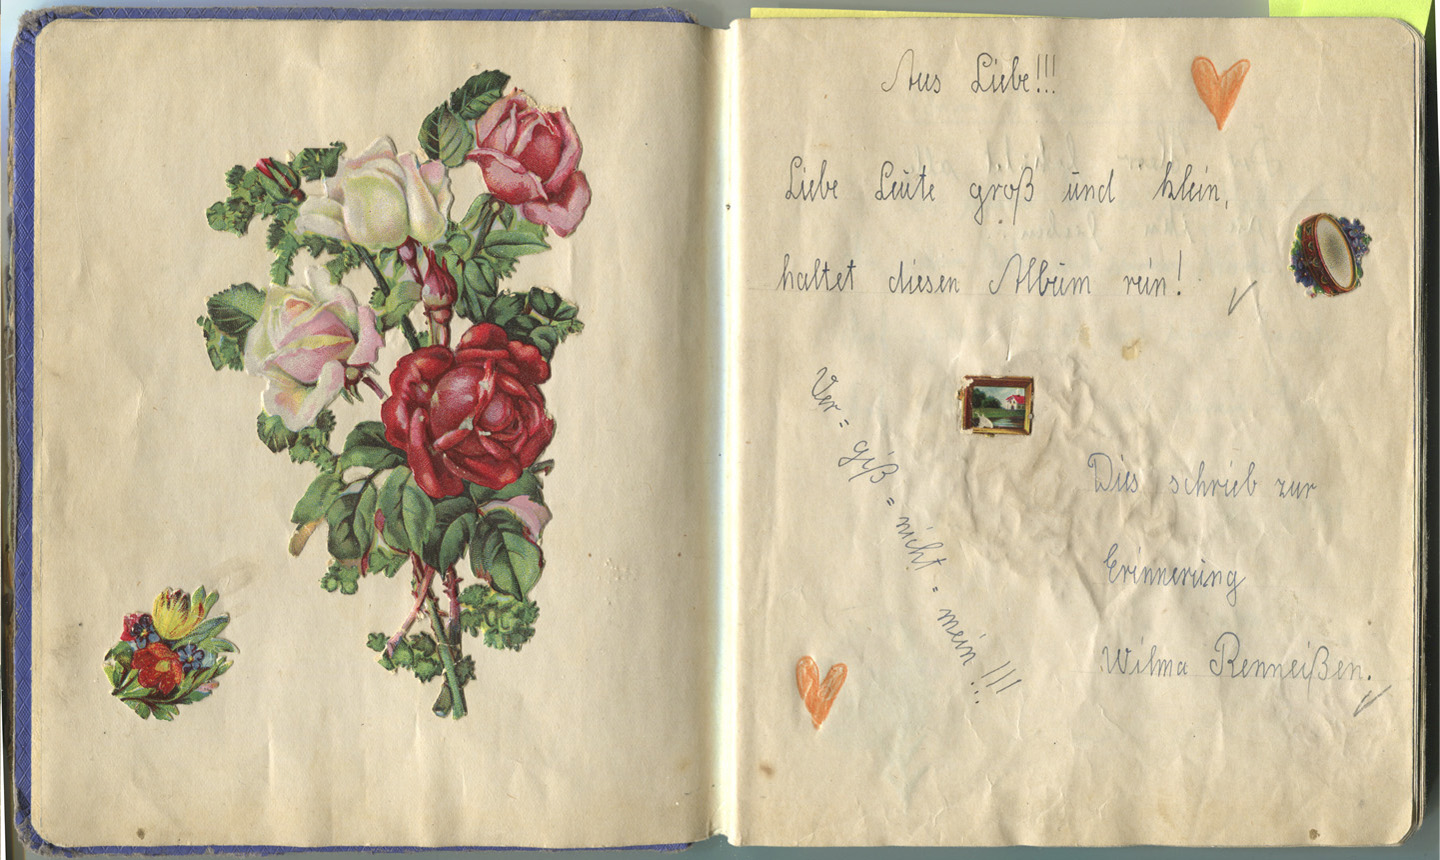 friendship book in Sütterlin. Wilma.